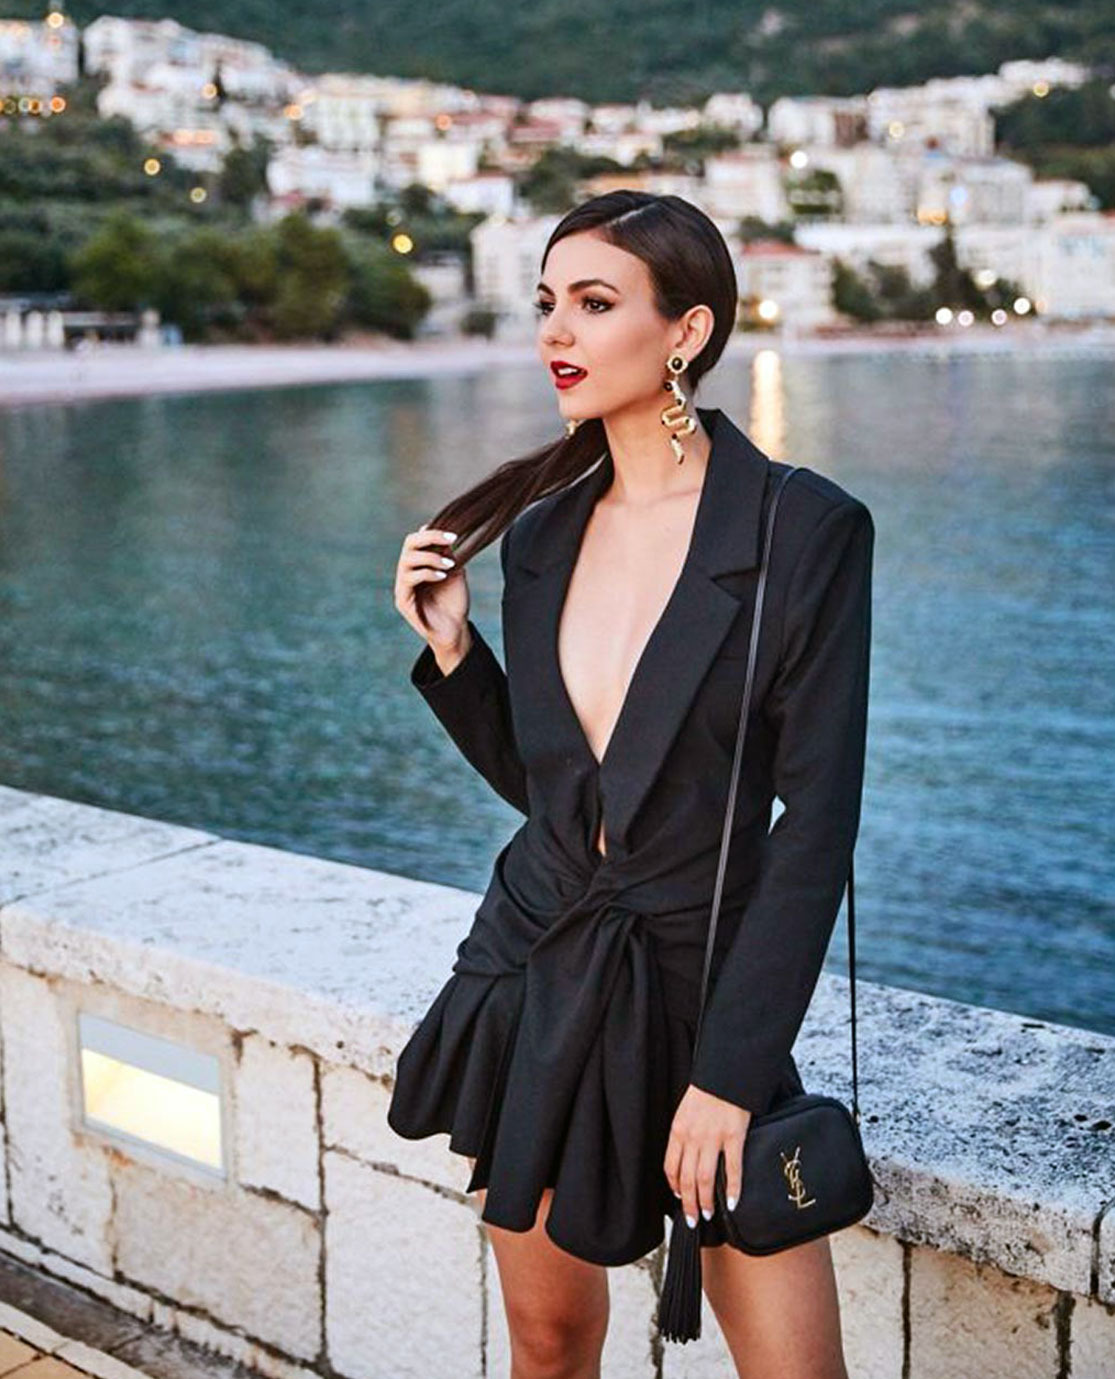 Victoria Justice Nude Photos - LEAKED ONLINE - Leaked Diaries